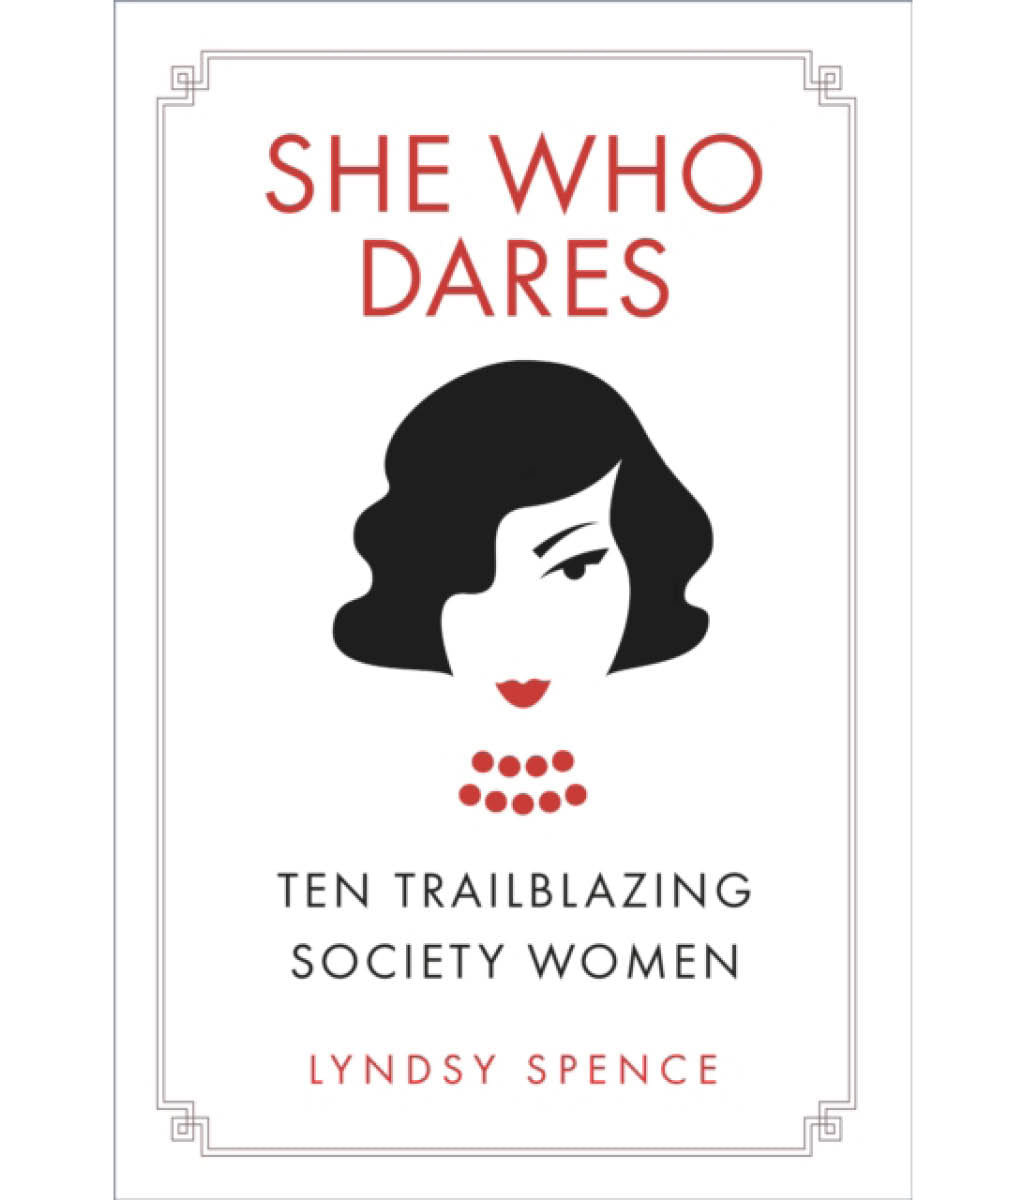 She who dares Lyndsy Spence